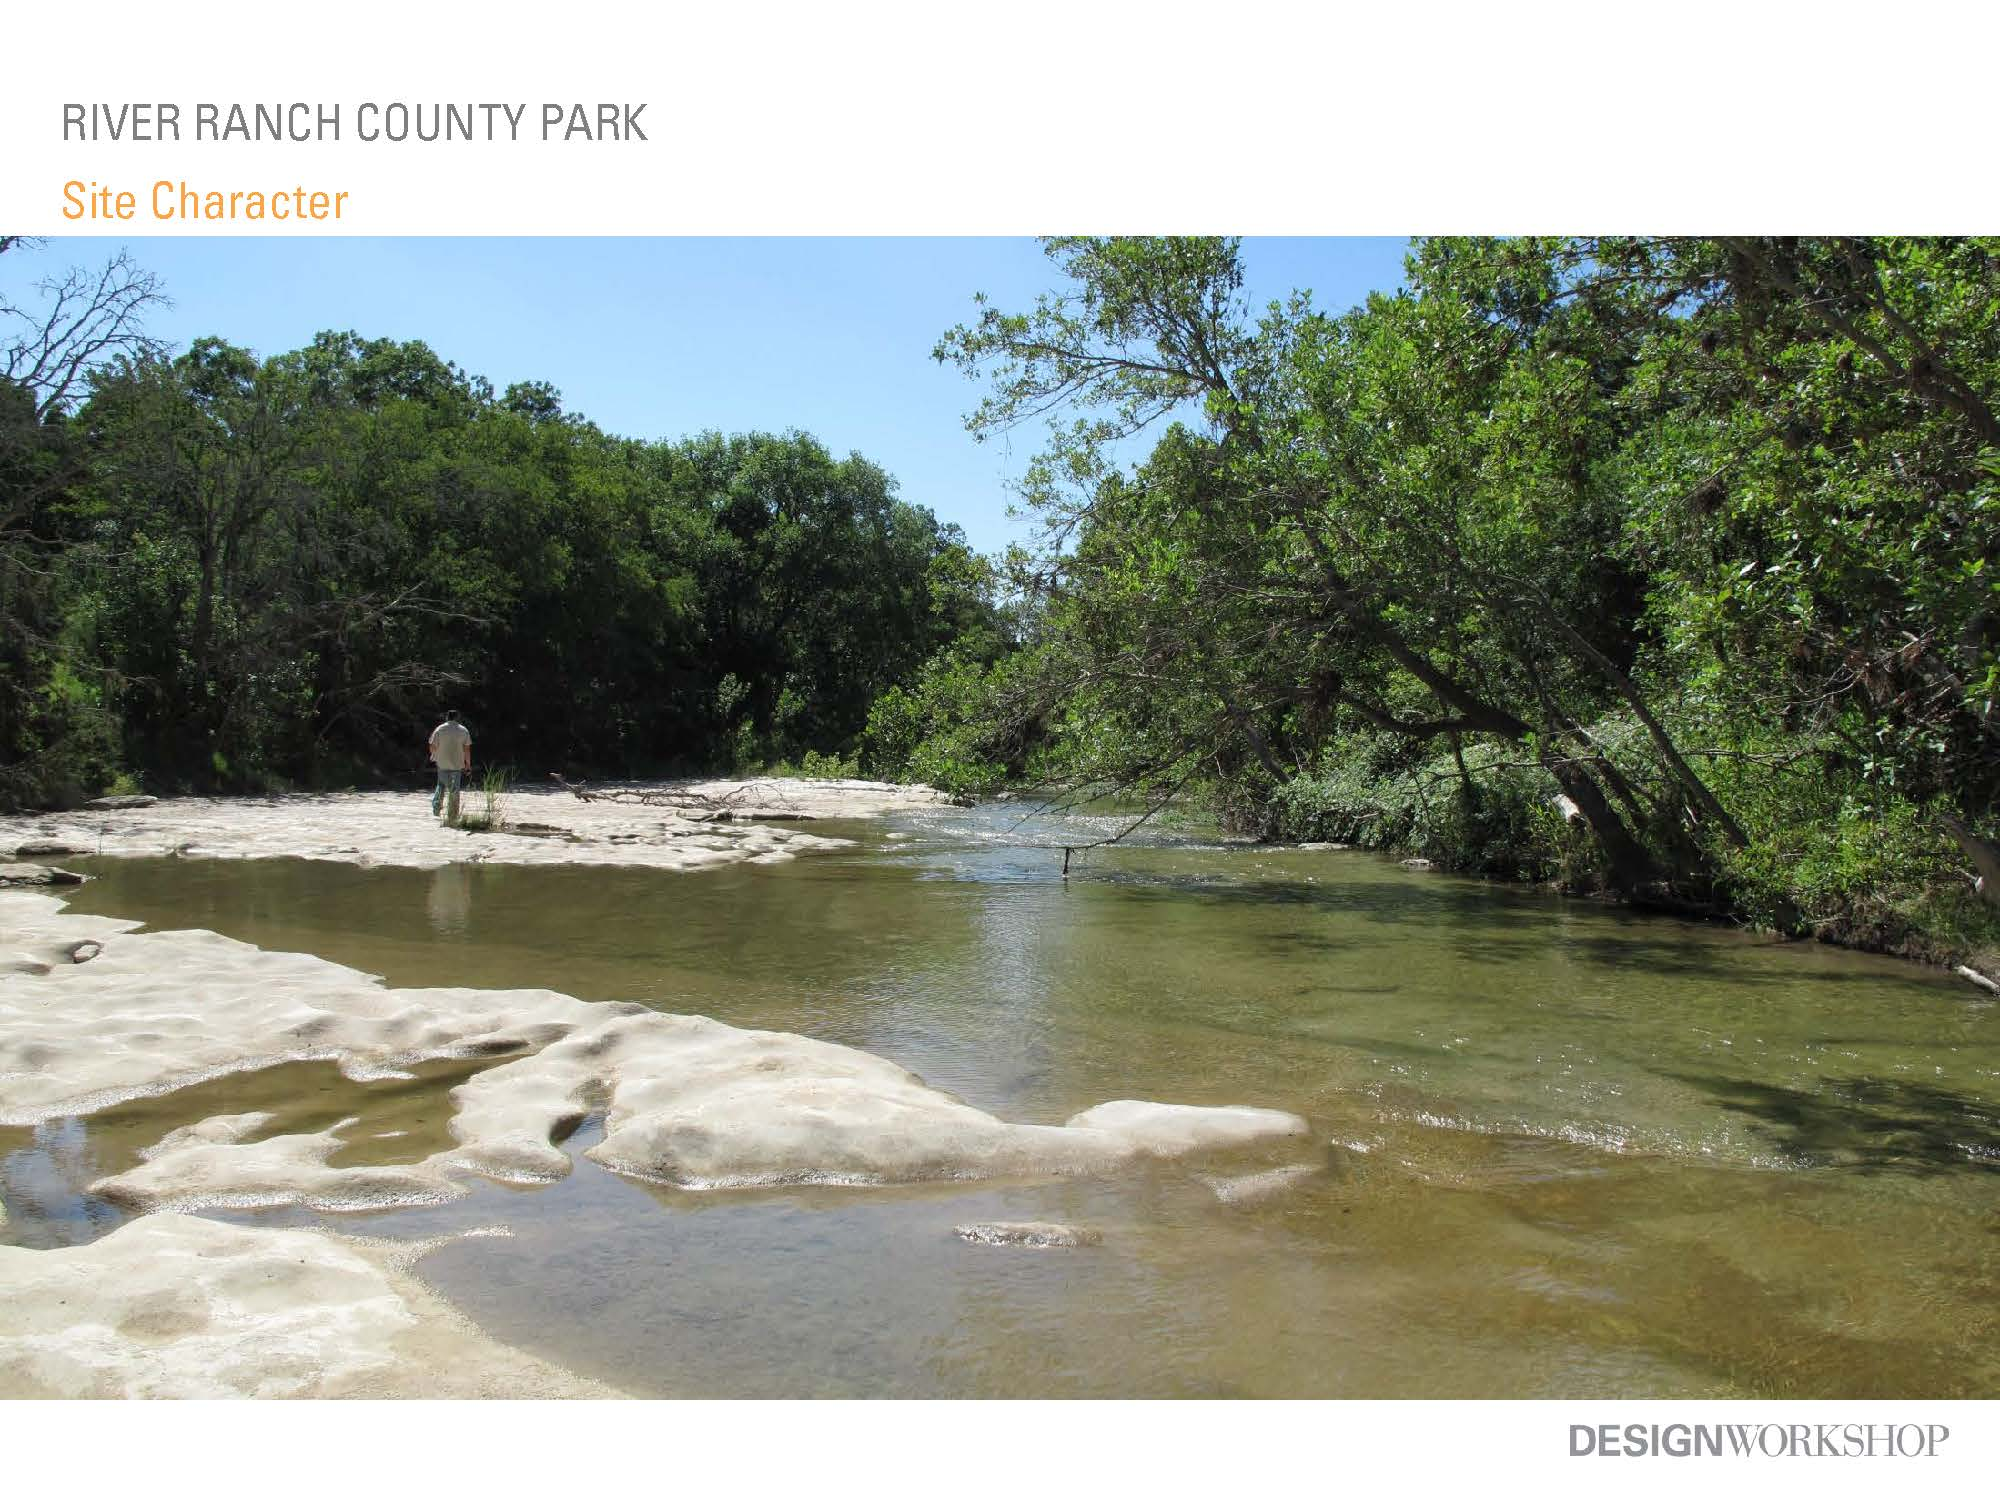 River_Ranch_County_Park_Ph1_Page_17.jpg